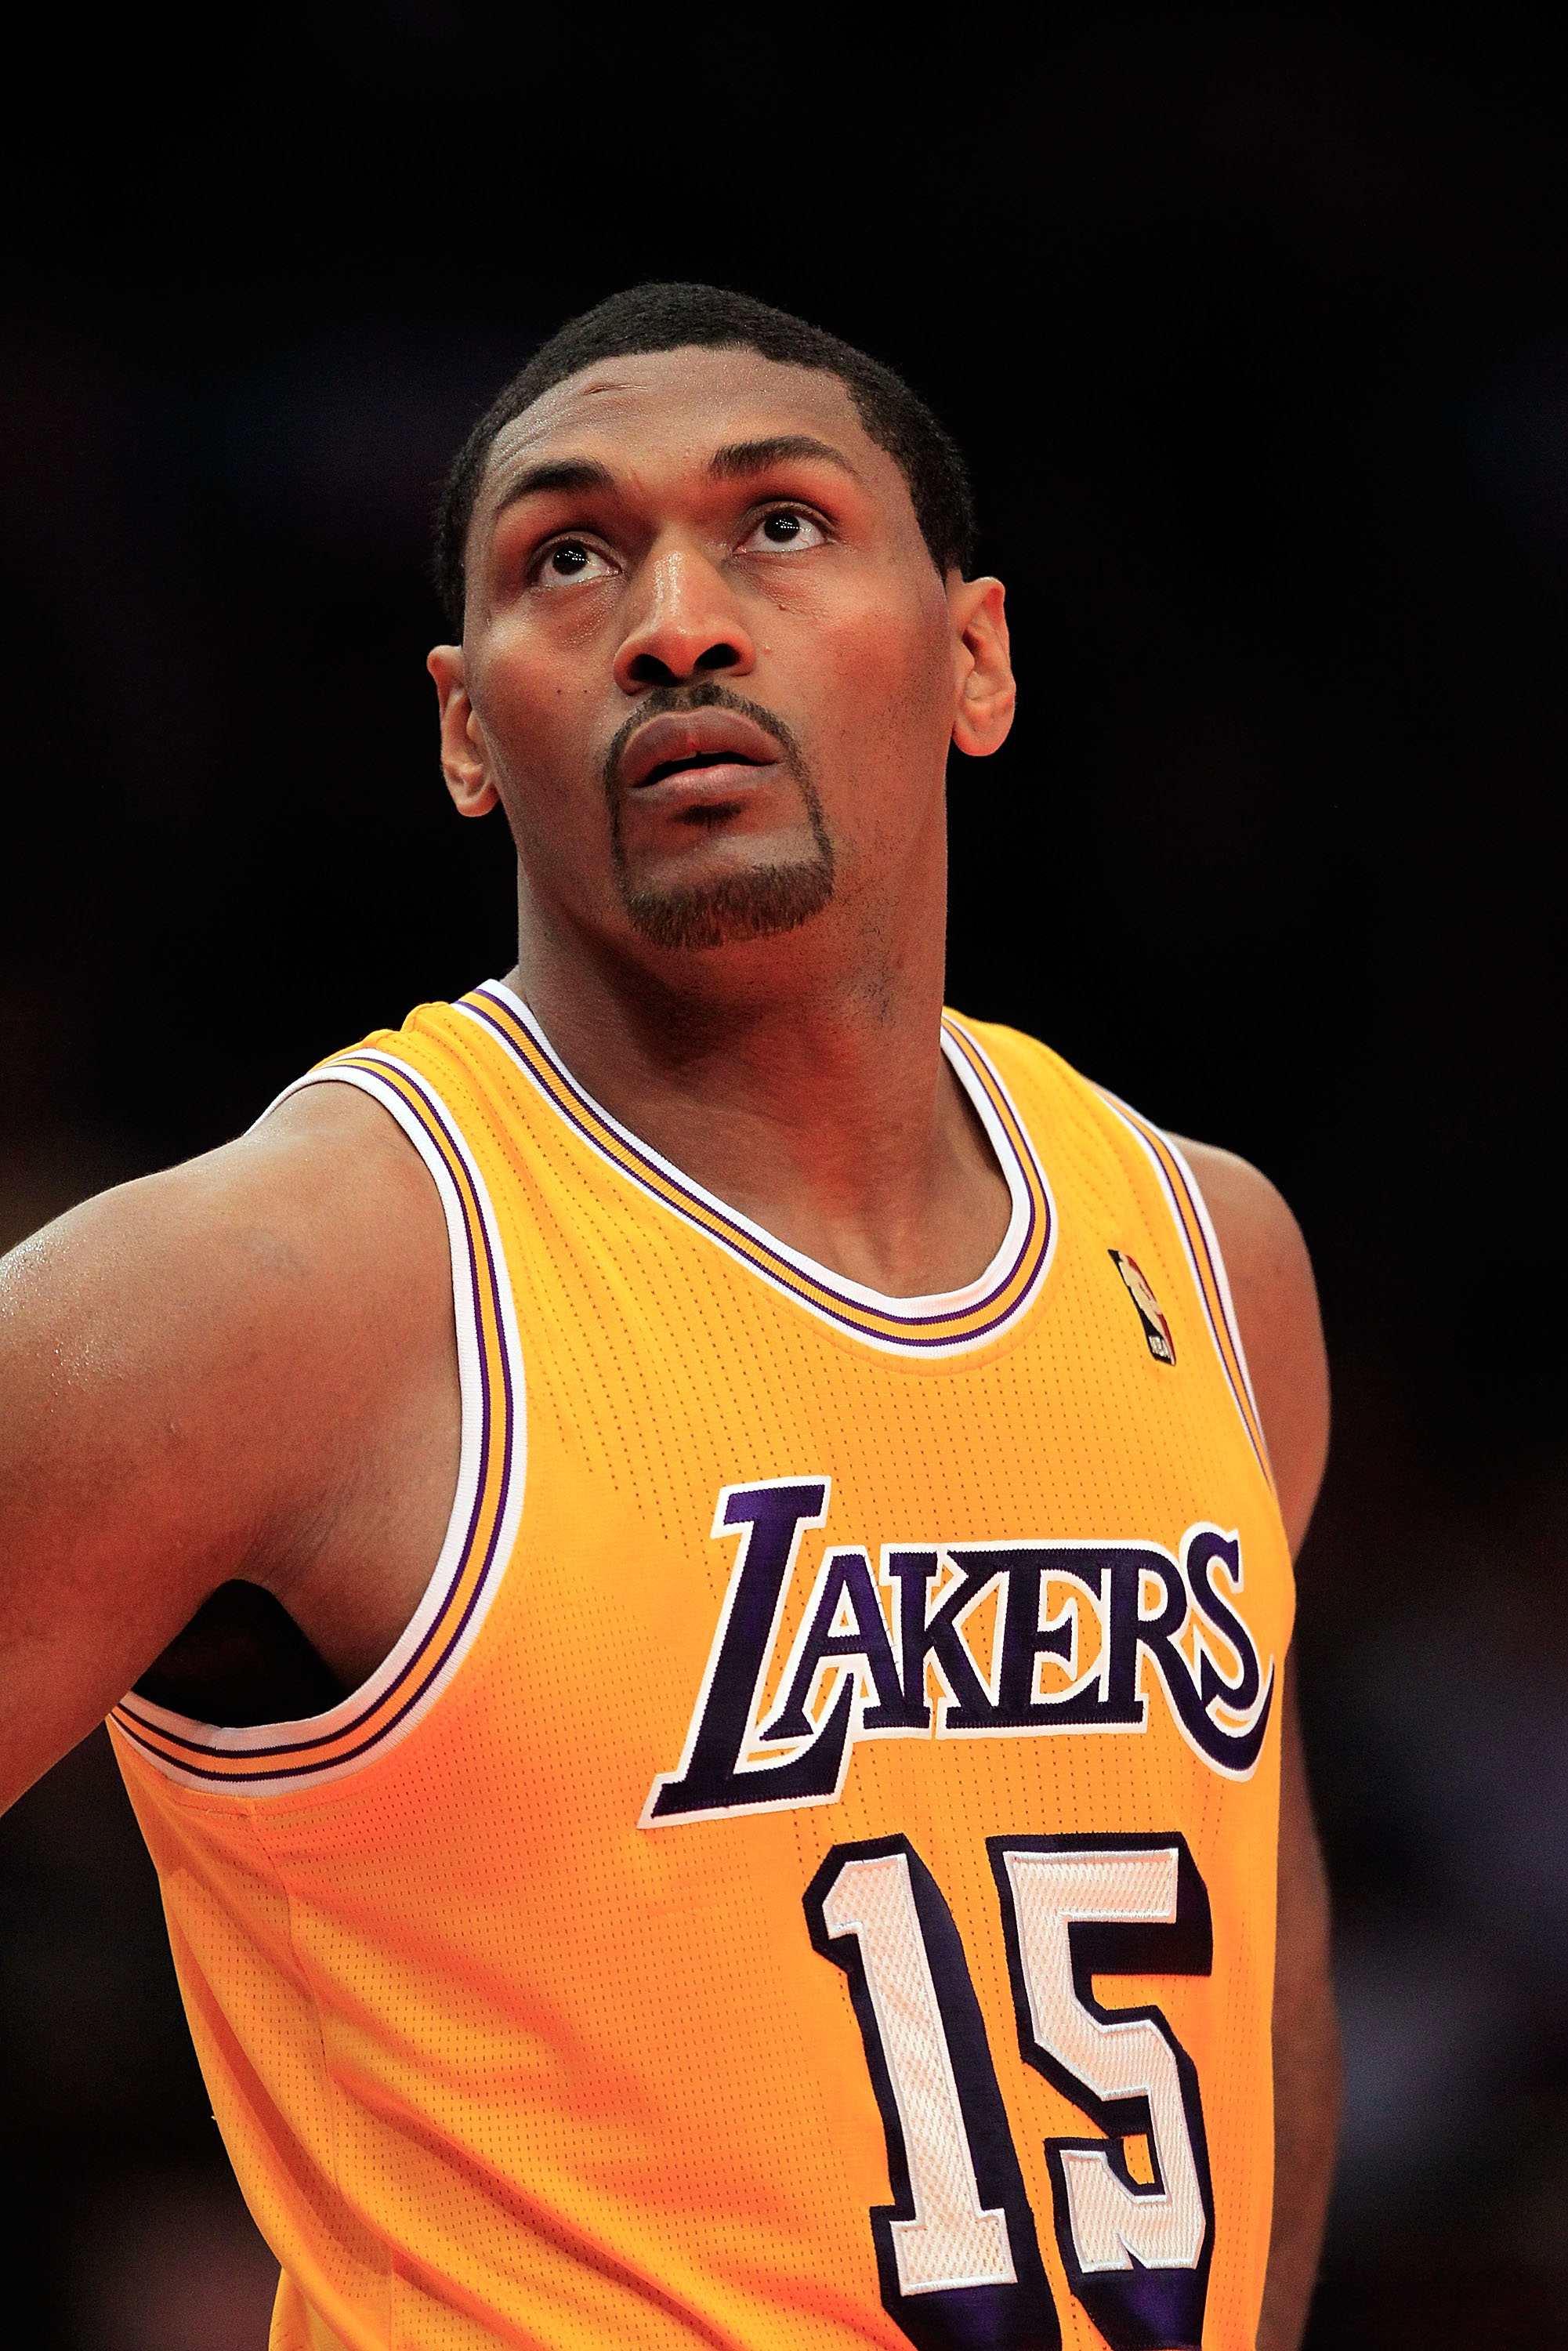 842b2d0f5 Los Angeles Lakers  Does Blame for Losing Fall on Kobe Bryant or ...